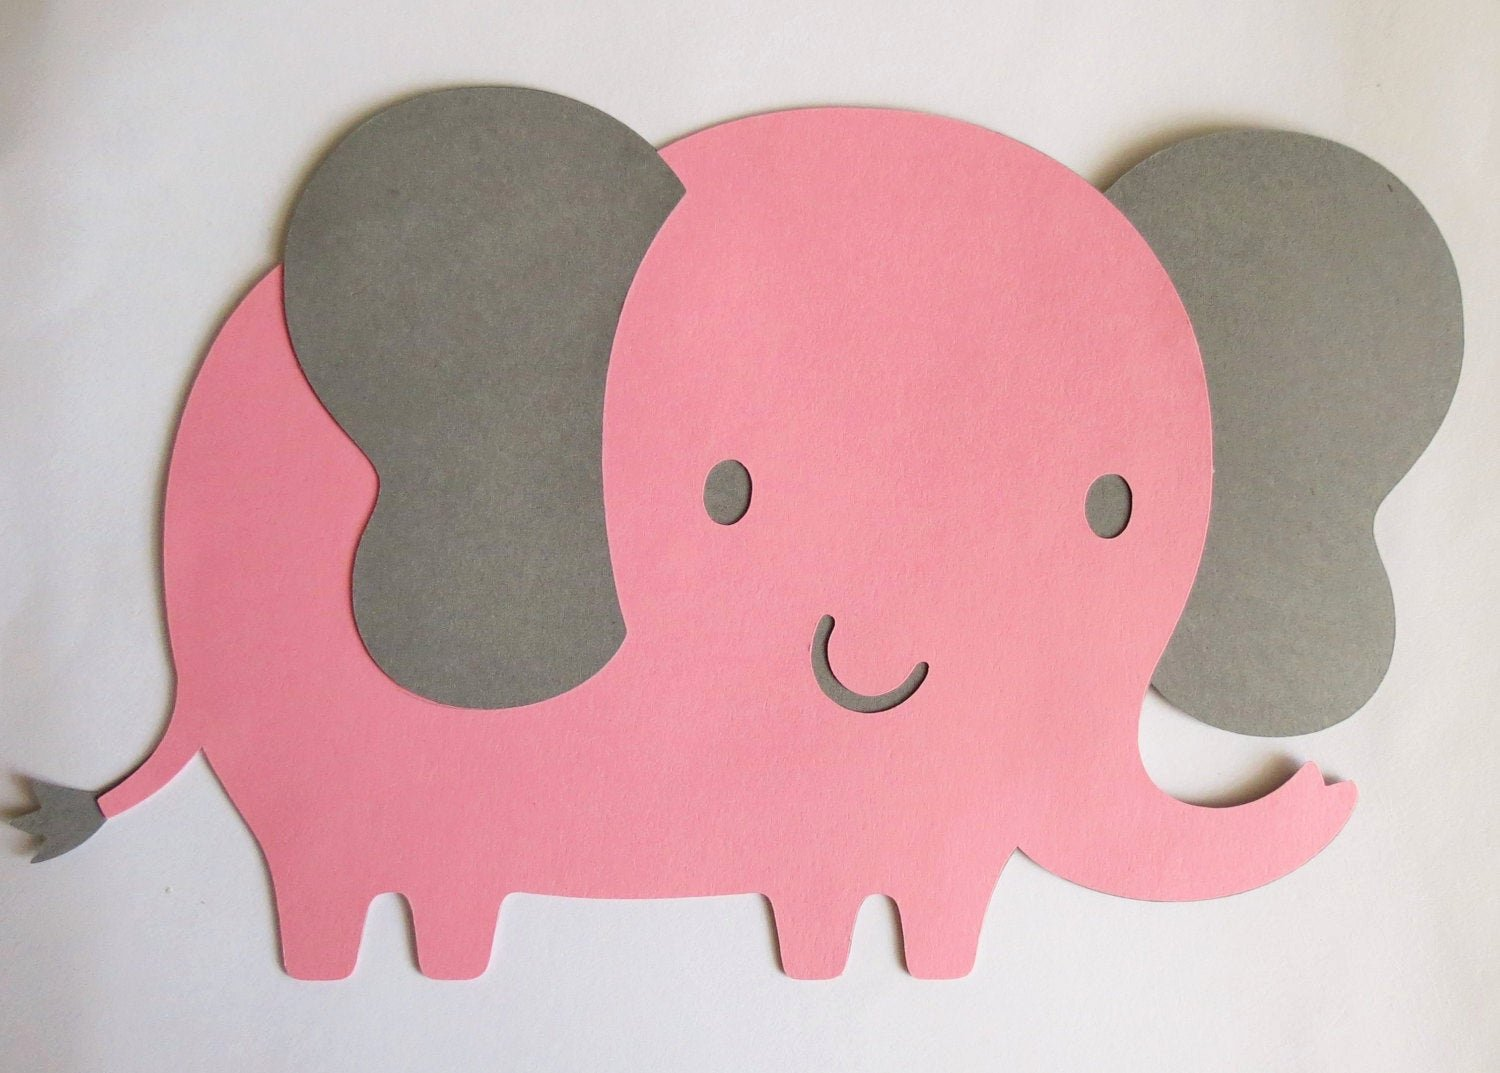 Baby Elephant Cut Outs Elegant Pink and Grey Elephant Cut Outs Die Cuts 8 W X